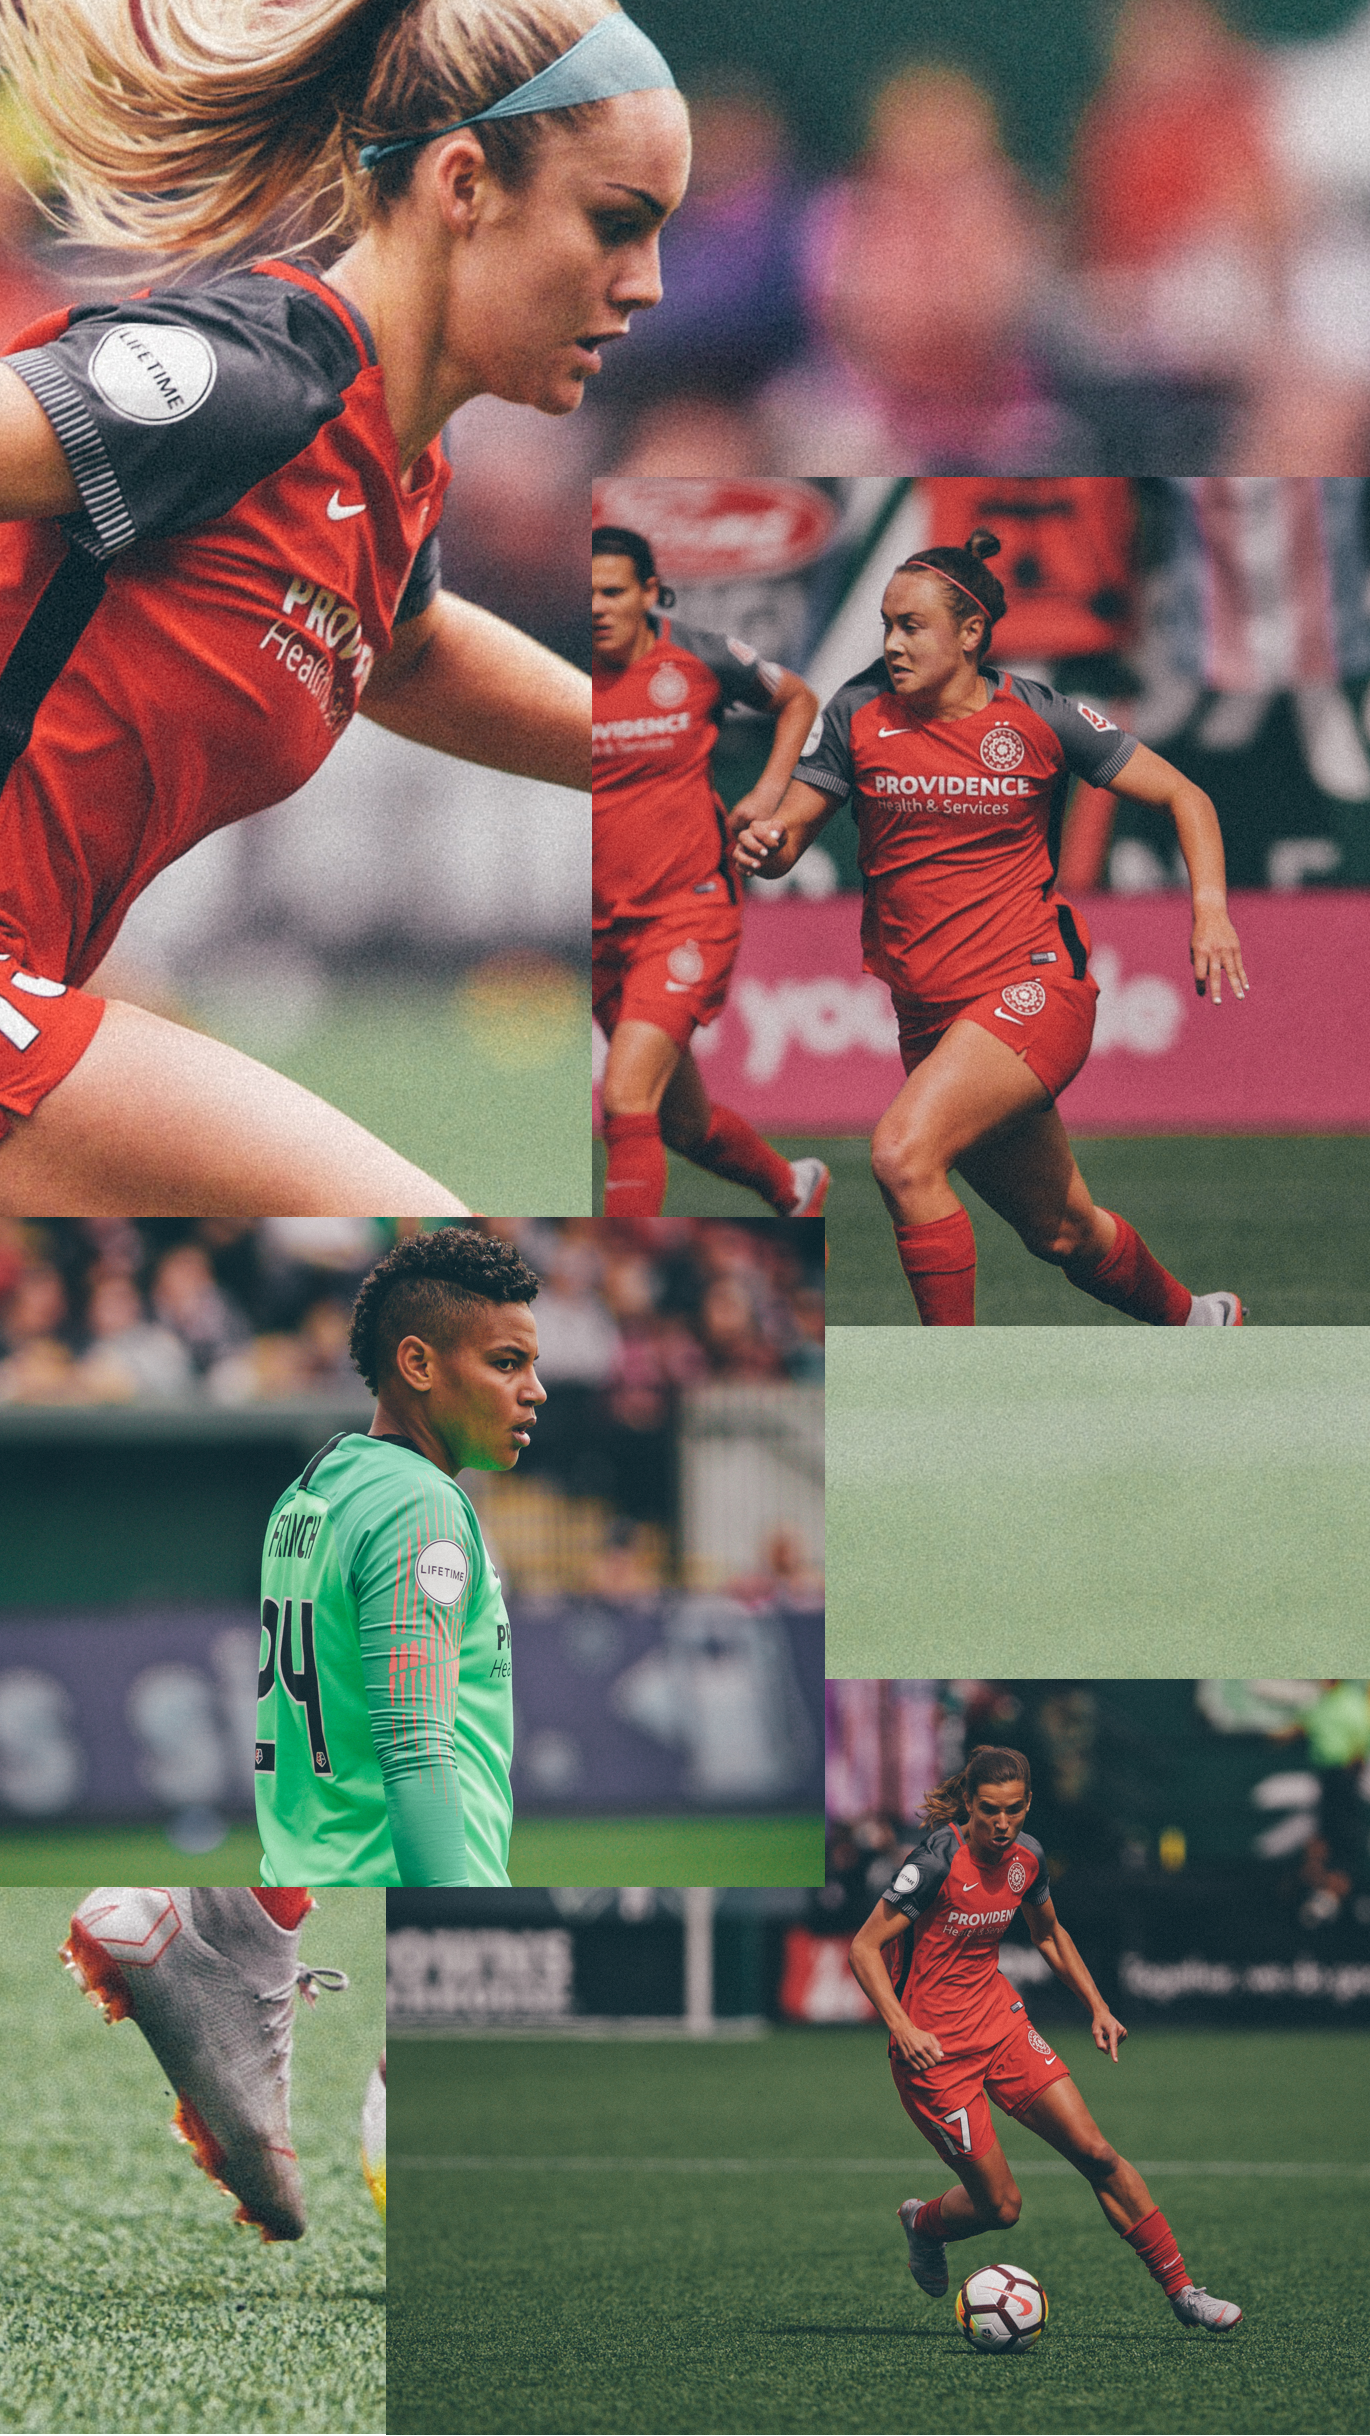 NIKE-NWSL-IG-STORY-08.png